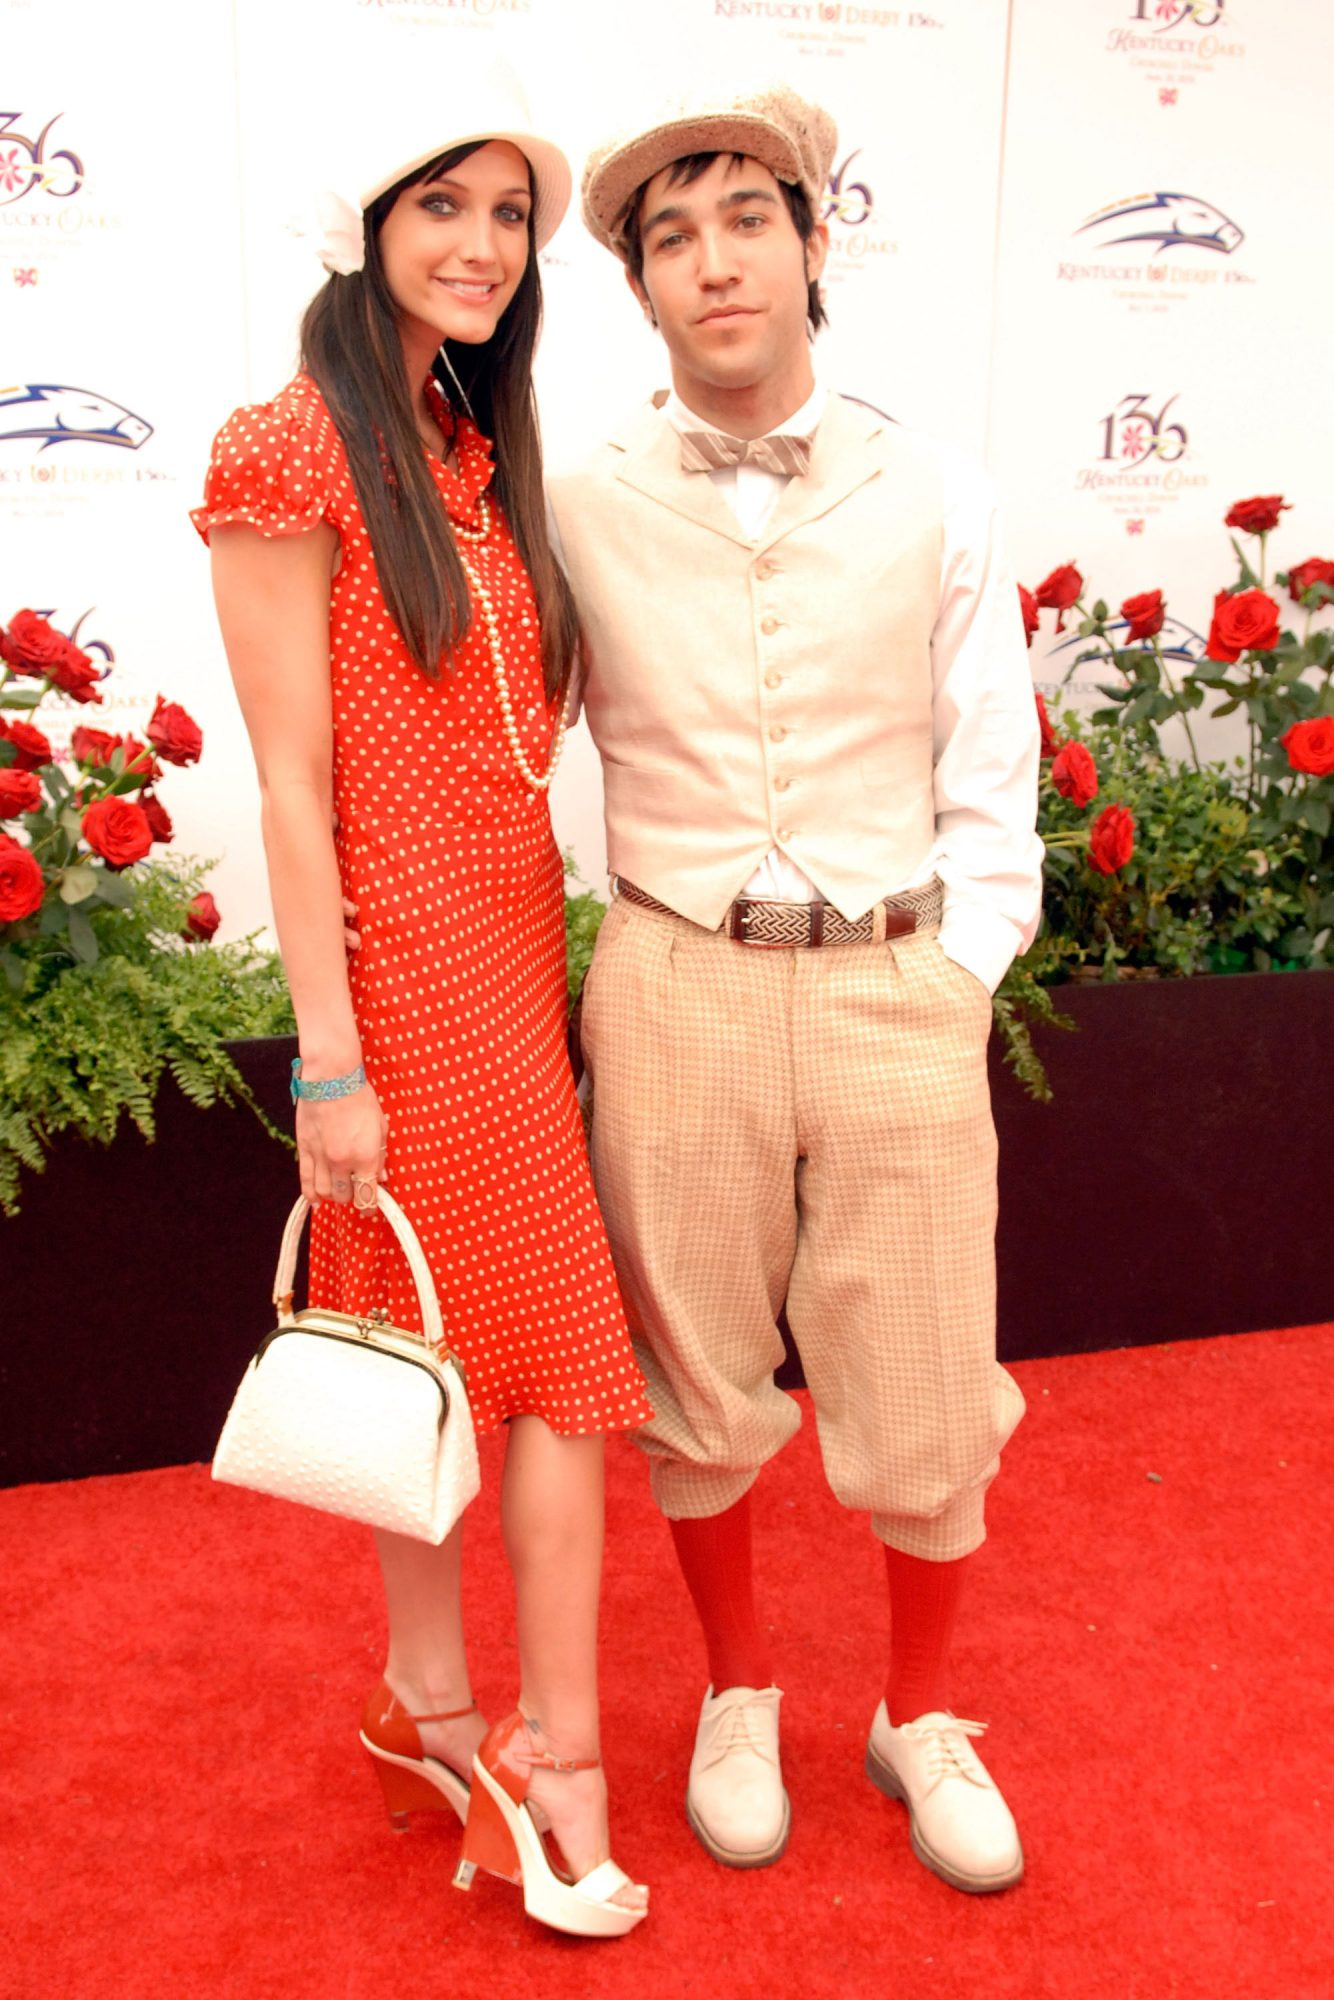 Ashlee Simpson at the Kentucky Derby